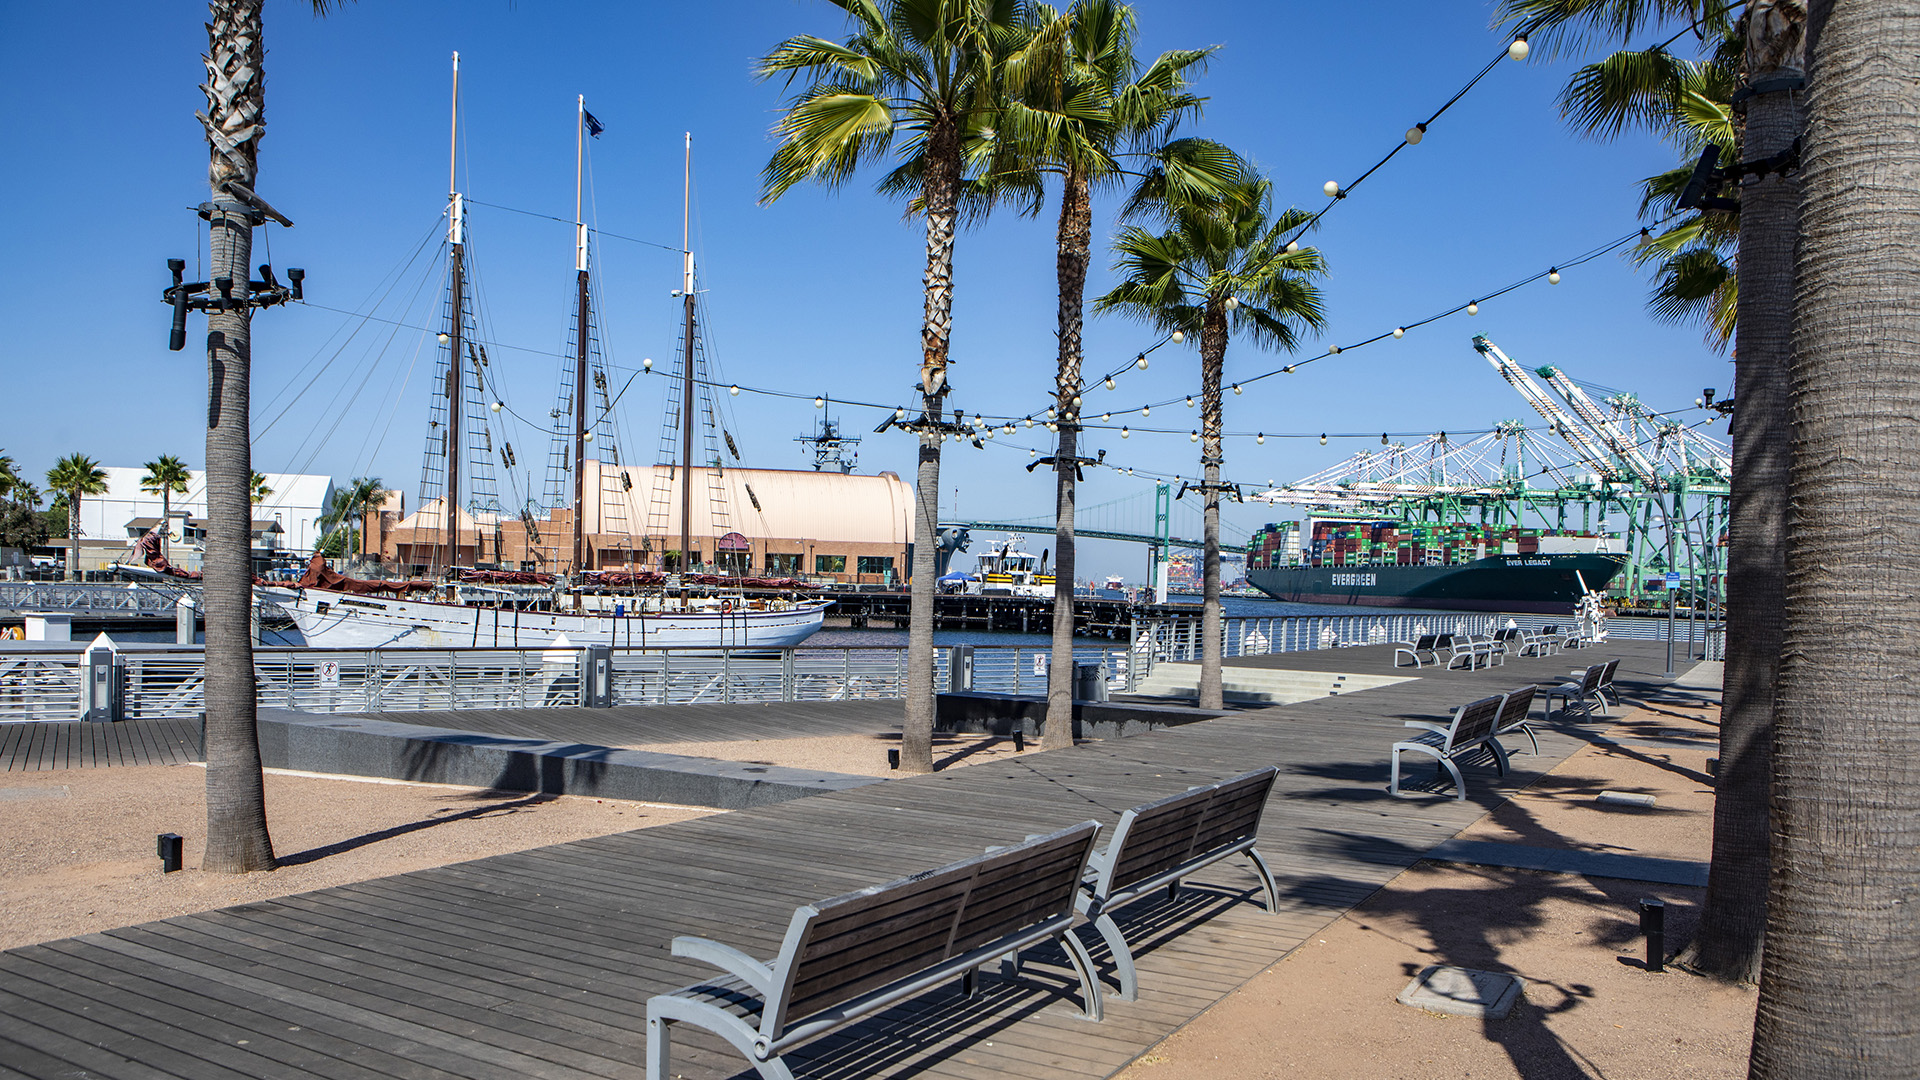 A view from the public harbor down at the port of San Pedro. Photo courtesy of the Port of Los Angeles.